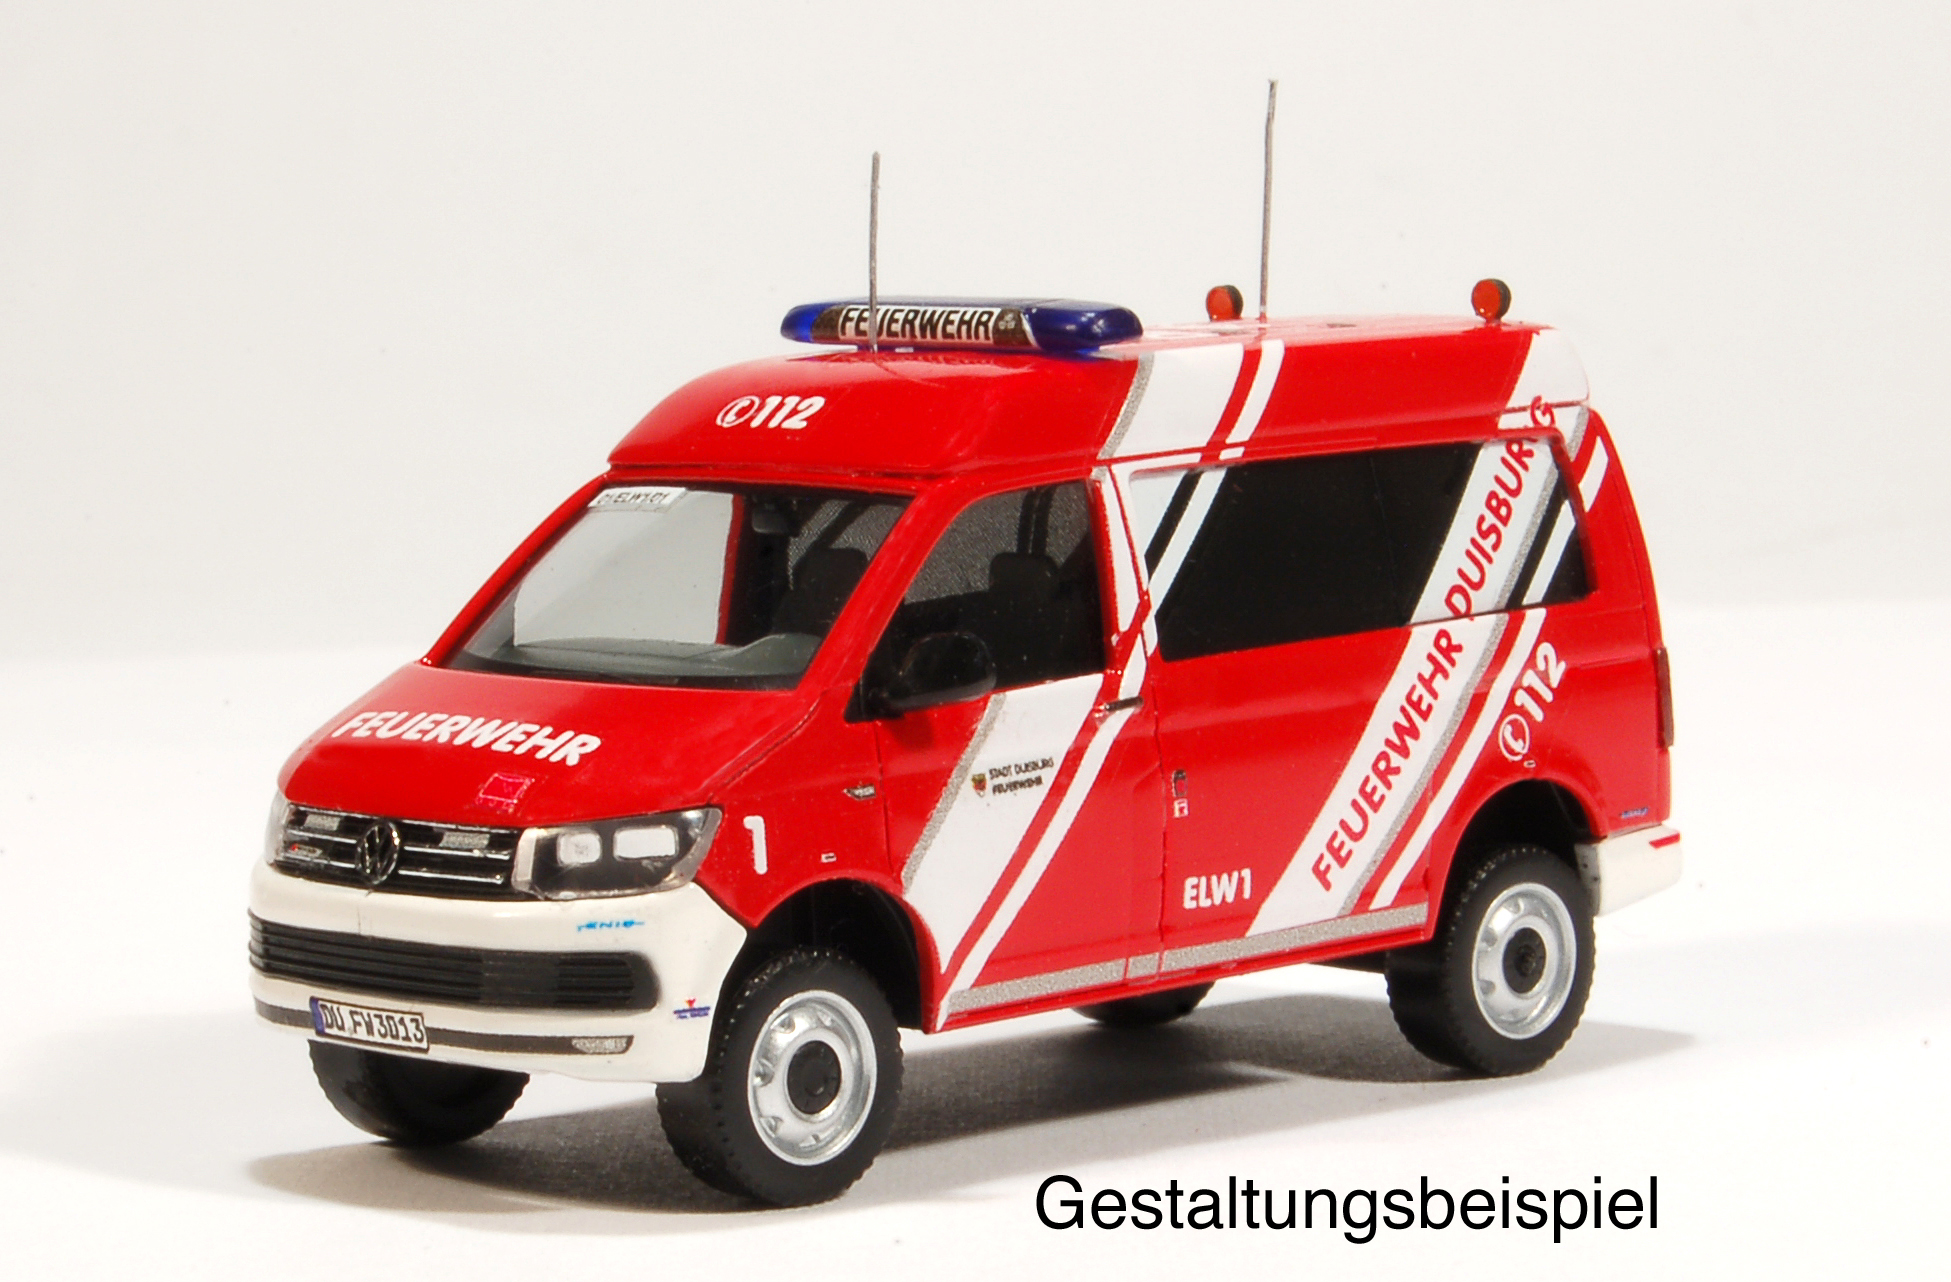 mbsk modellbau studio kaiserberg vw t 6 elw 1 feuerwehr duisburg umbausatz mbsk01b. Black Bedroom Furniture Sets. Home Design Ideas